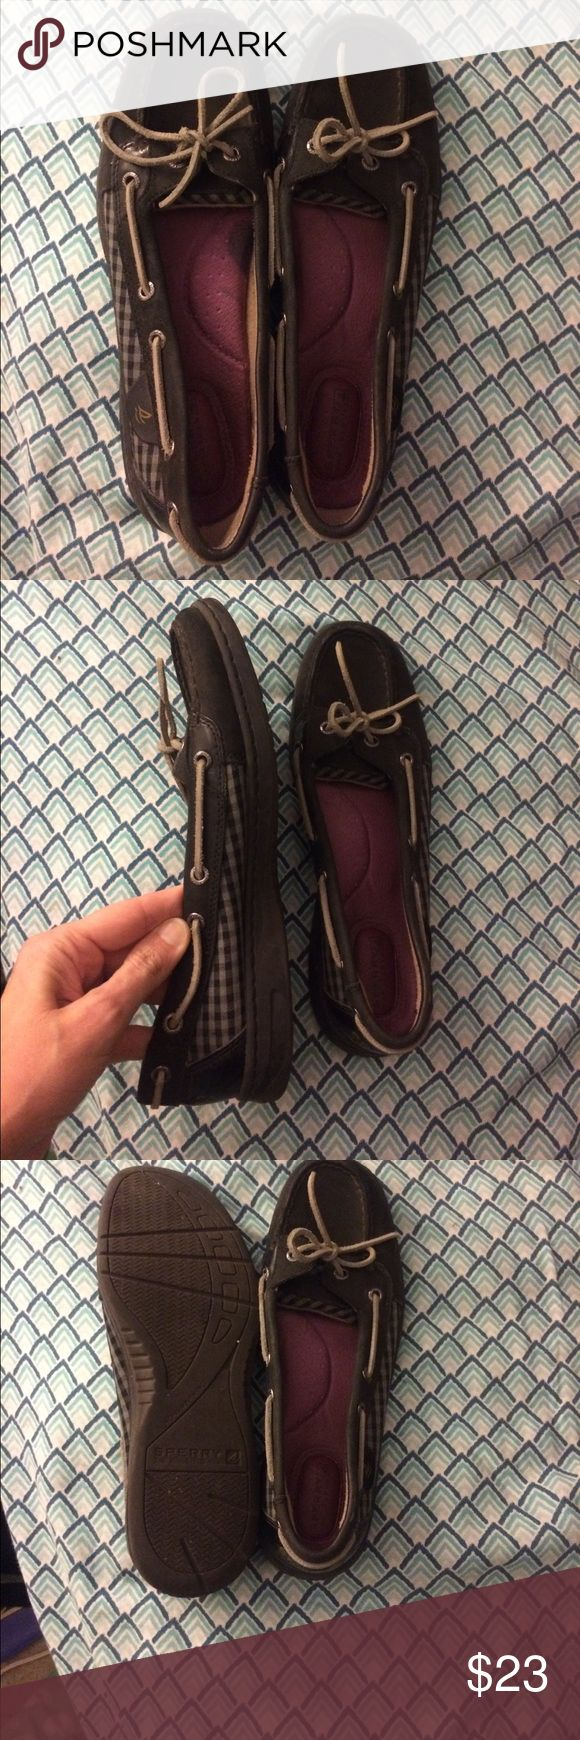 Sperry angelfish Black These are black pair of sperry shoes. I wore them 3 or 4 times. I have a bad foot, and they didn't work for me. There is an odd little spot on the left foot. I have no idea what it is; I didn't wear them enough to make a stain. I think it's just discoloration. I like to be up front. Sperry Top-Sider Shoes Flats & Loafers